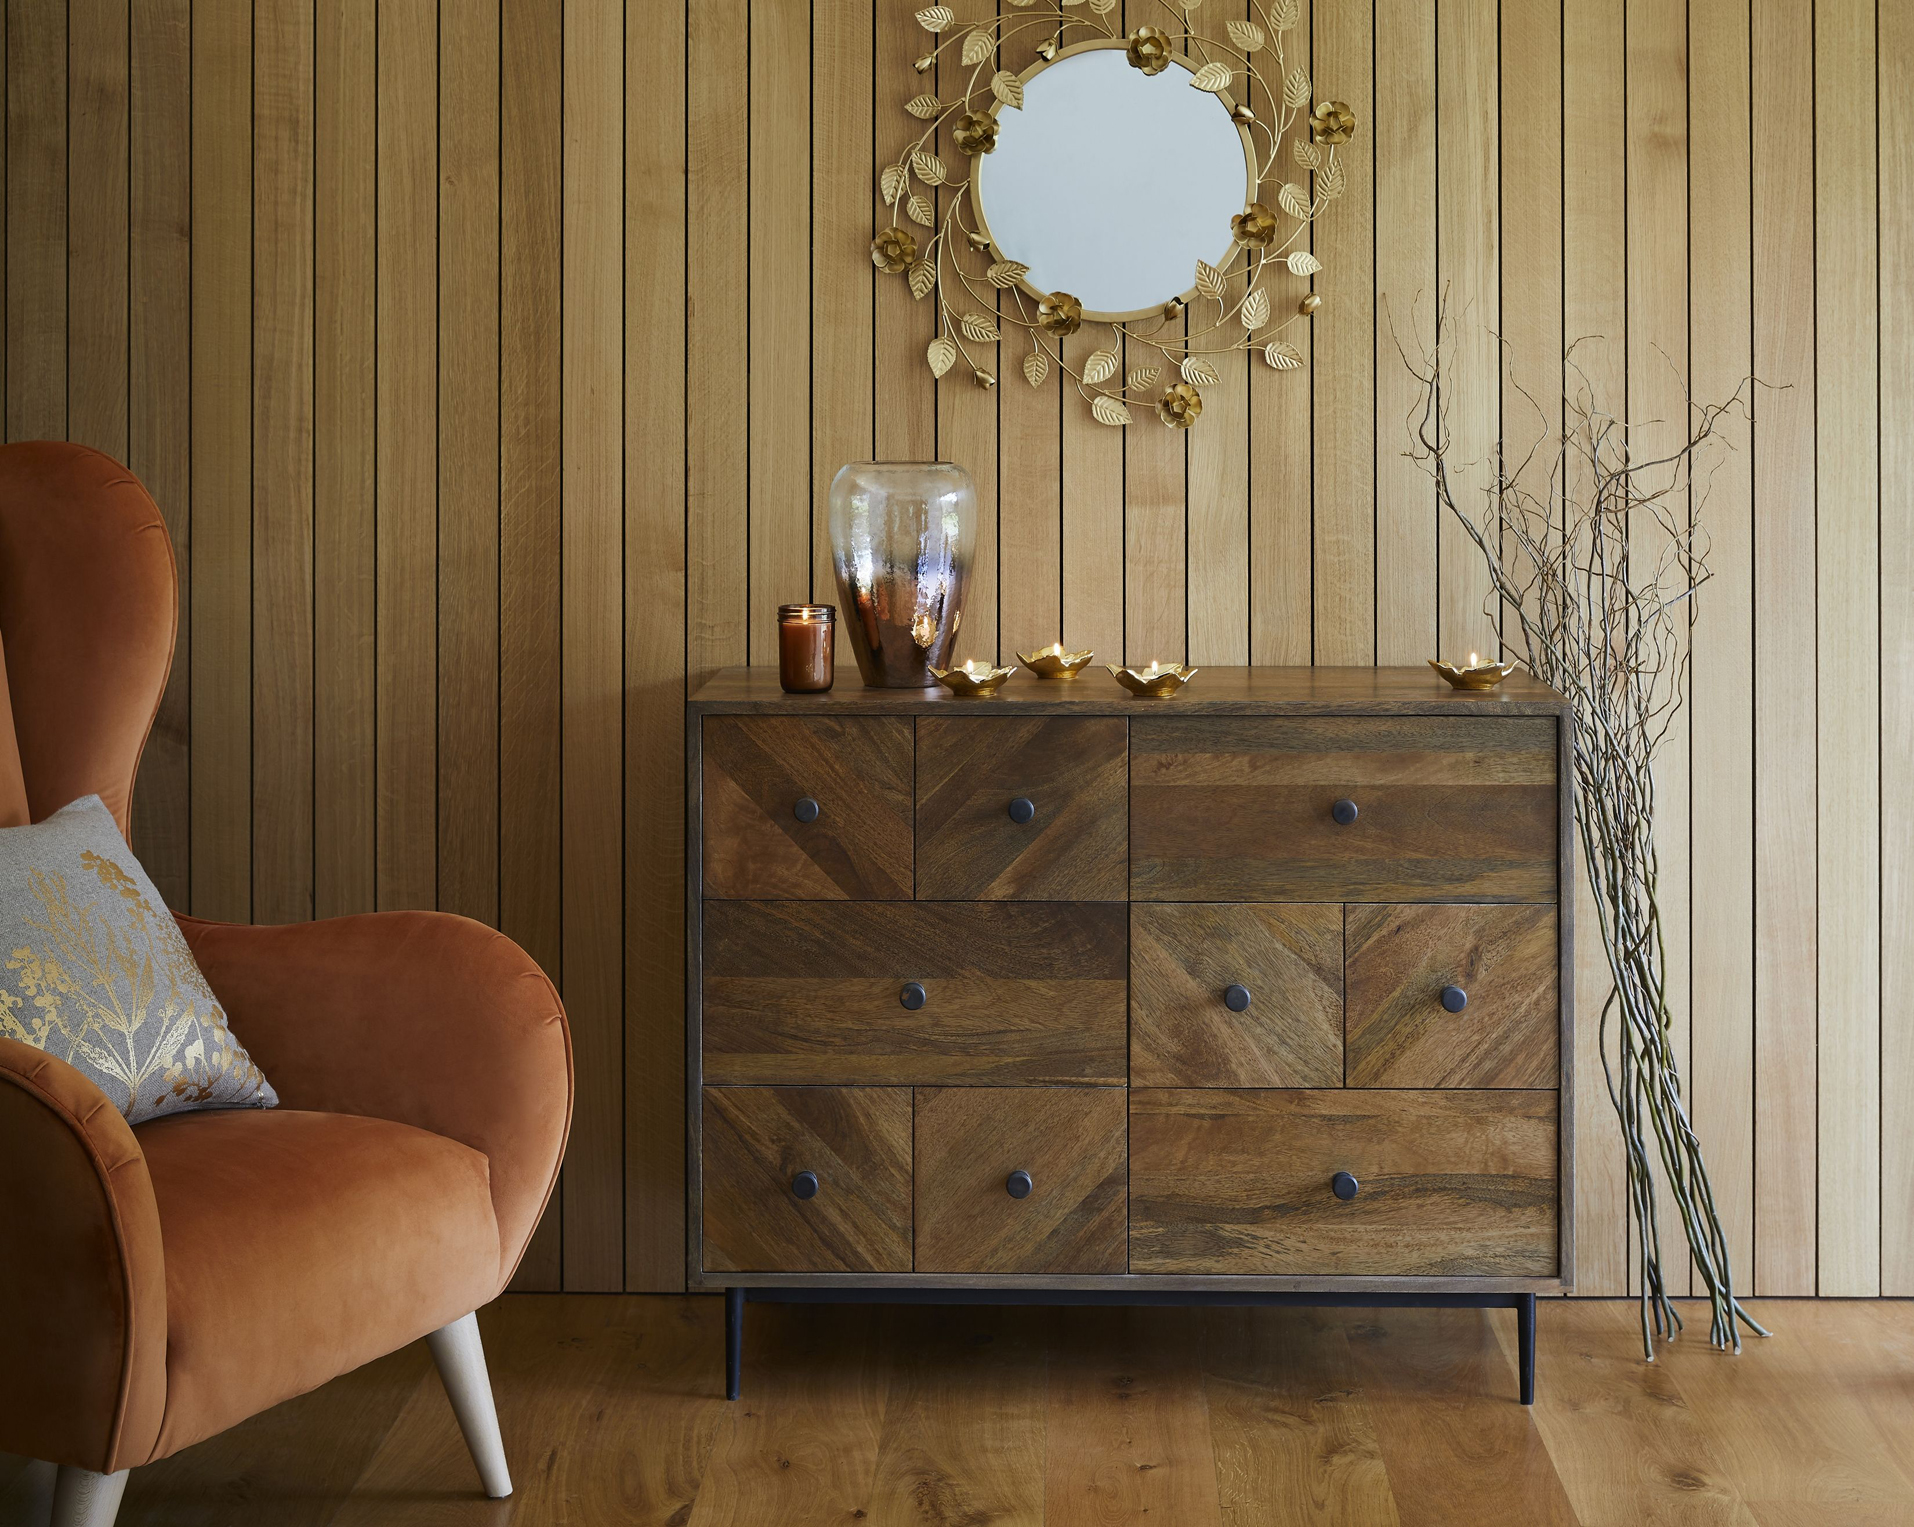 Multi drawer chest with mirror and armchair